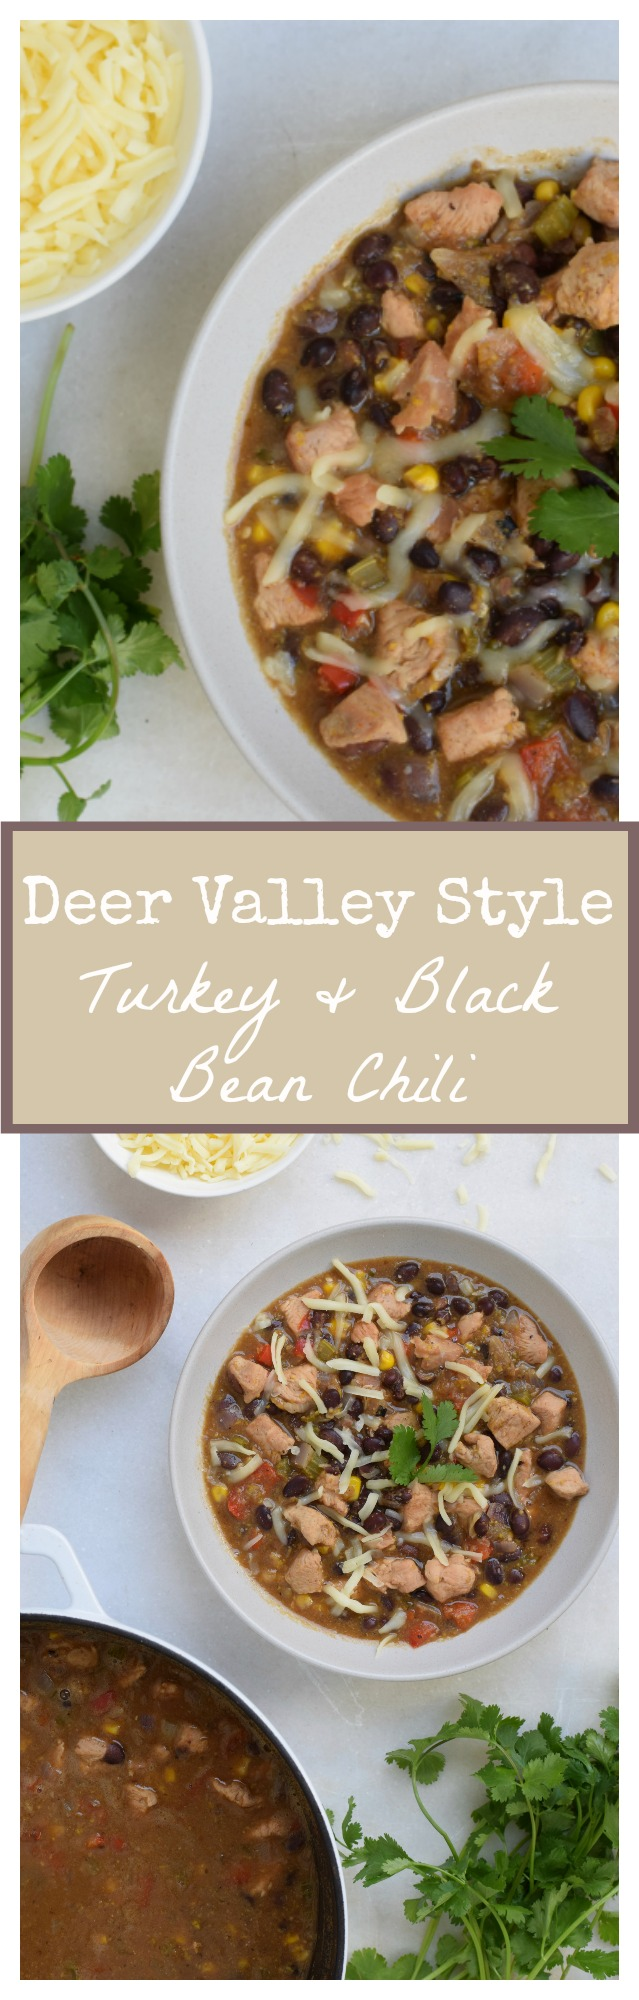 Deer Valley-Style Turkey and Black Bean Chili | Pamela Salzman